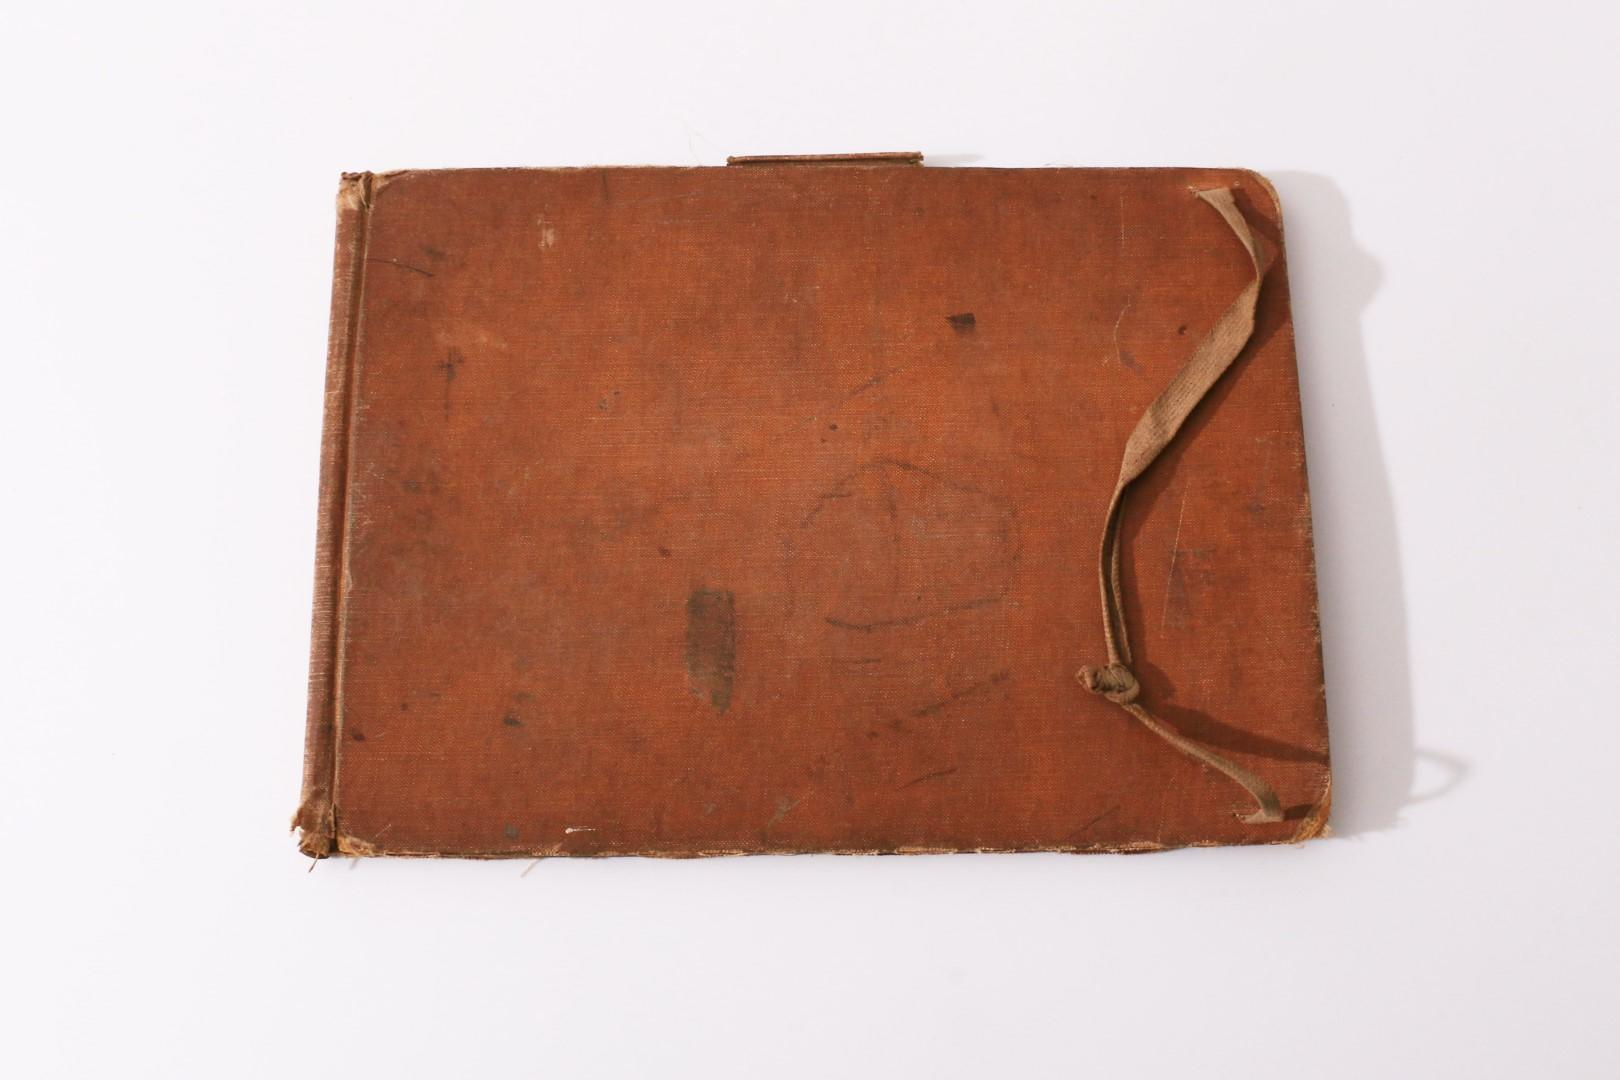 David Tayler - A Sketchbook - , c1950, Manuscript.